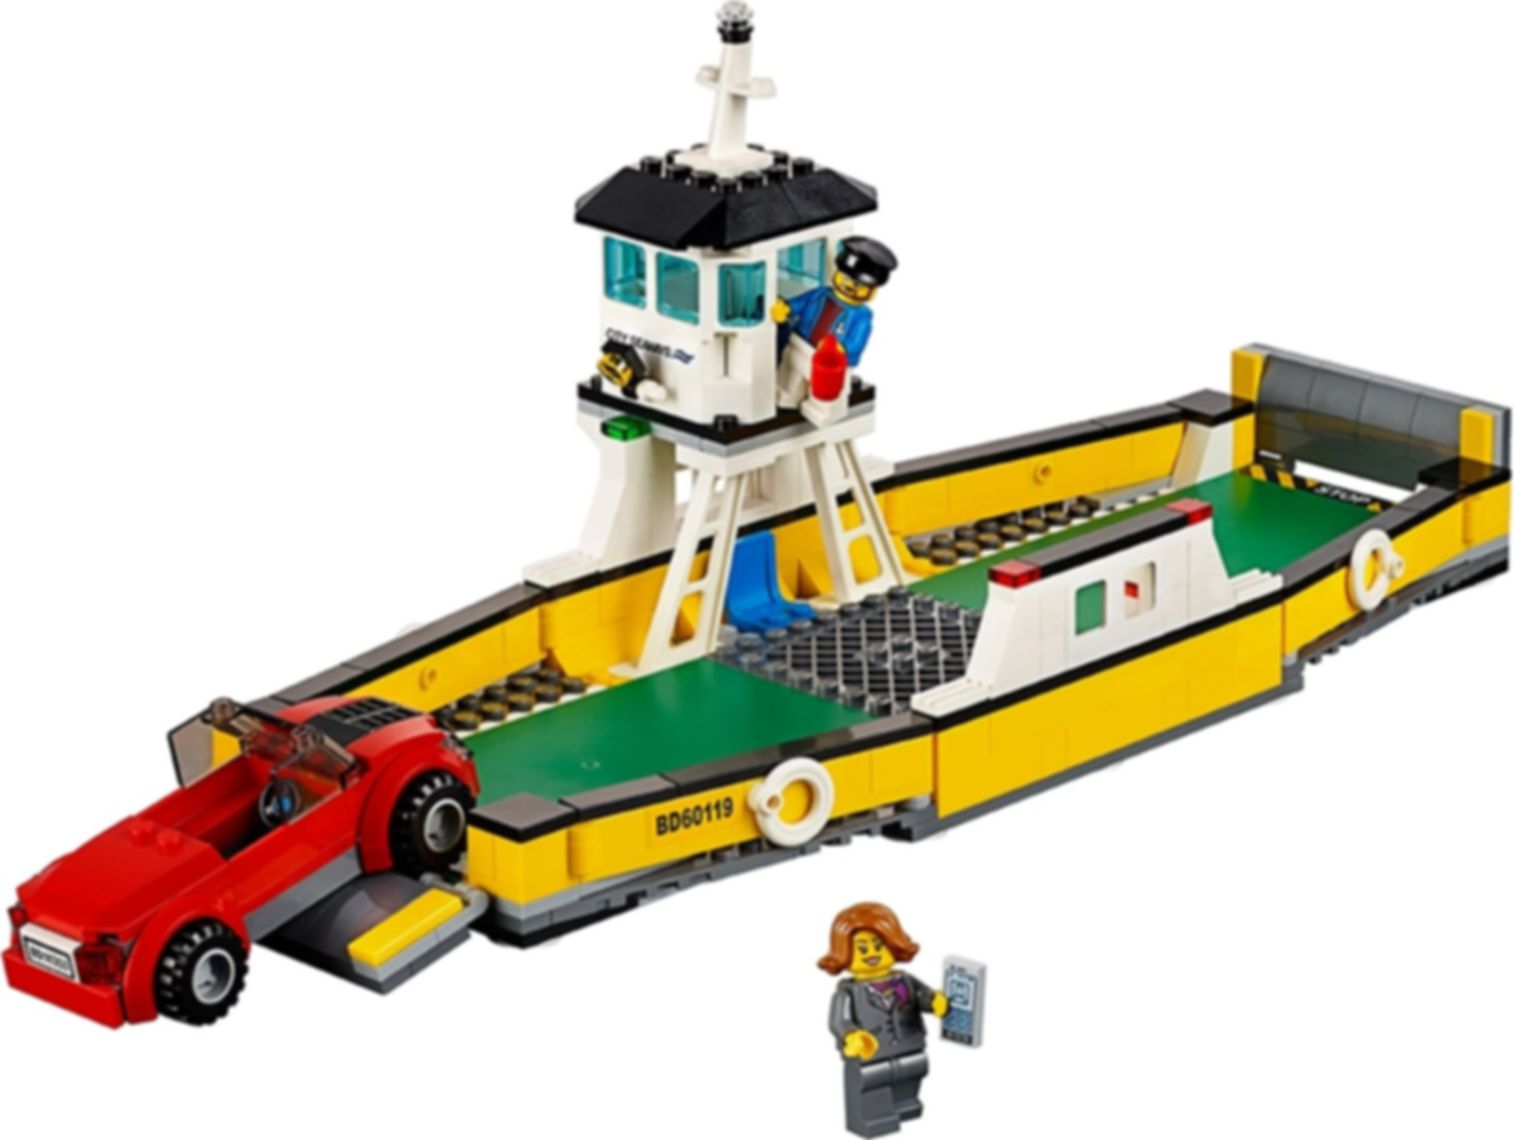 LEGO® City Ferry components